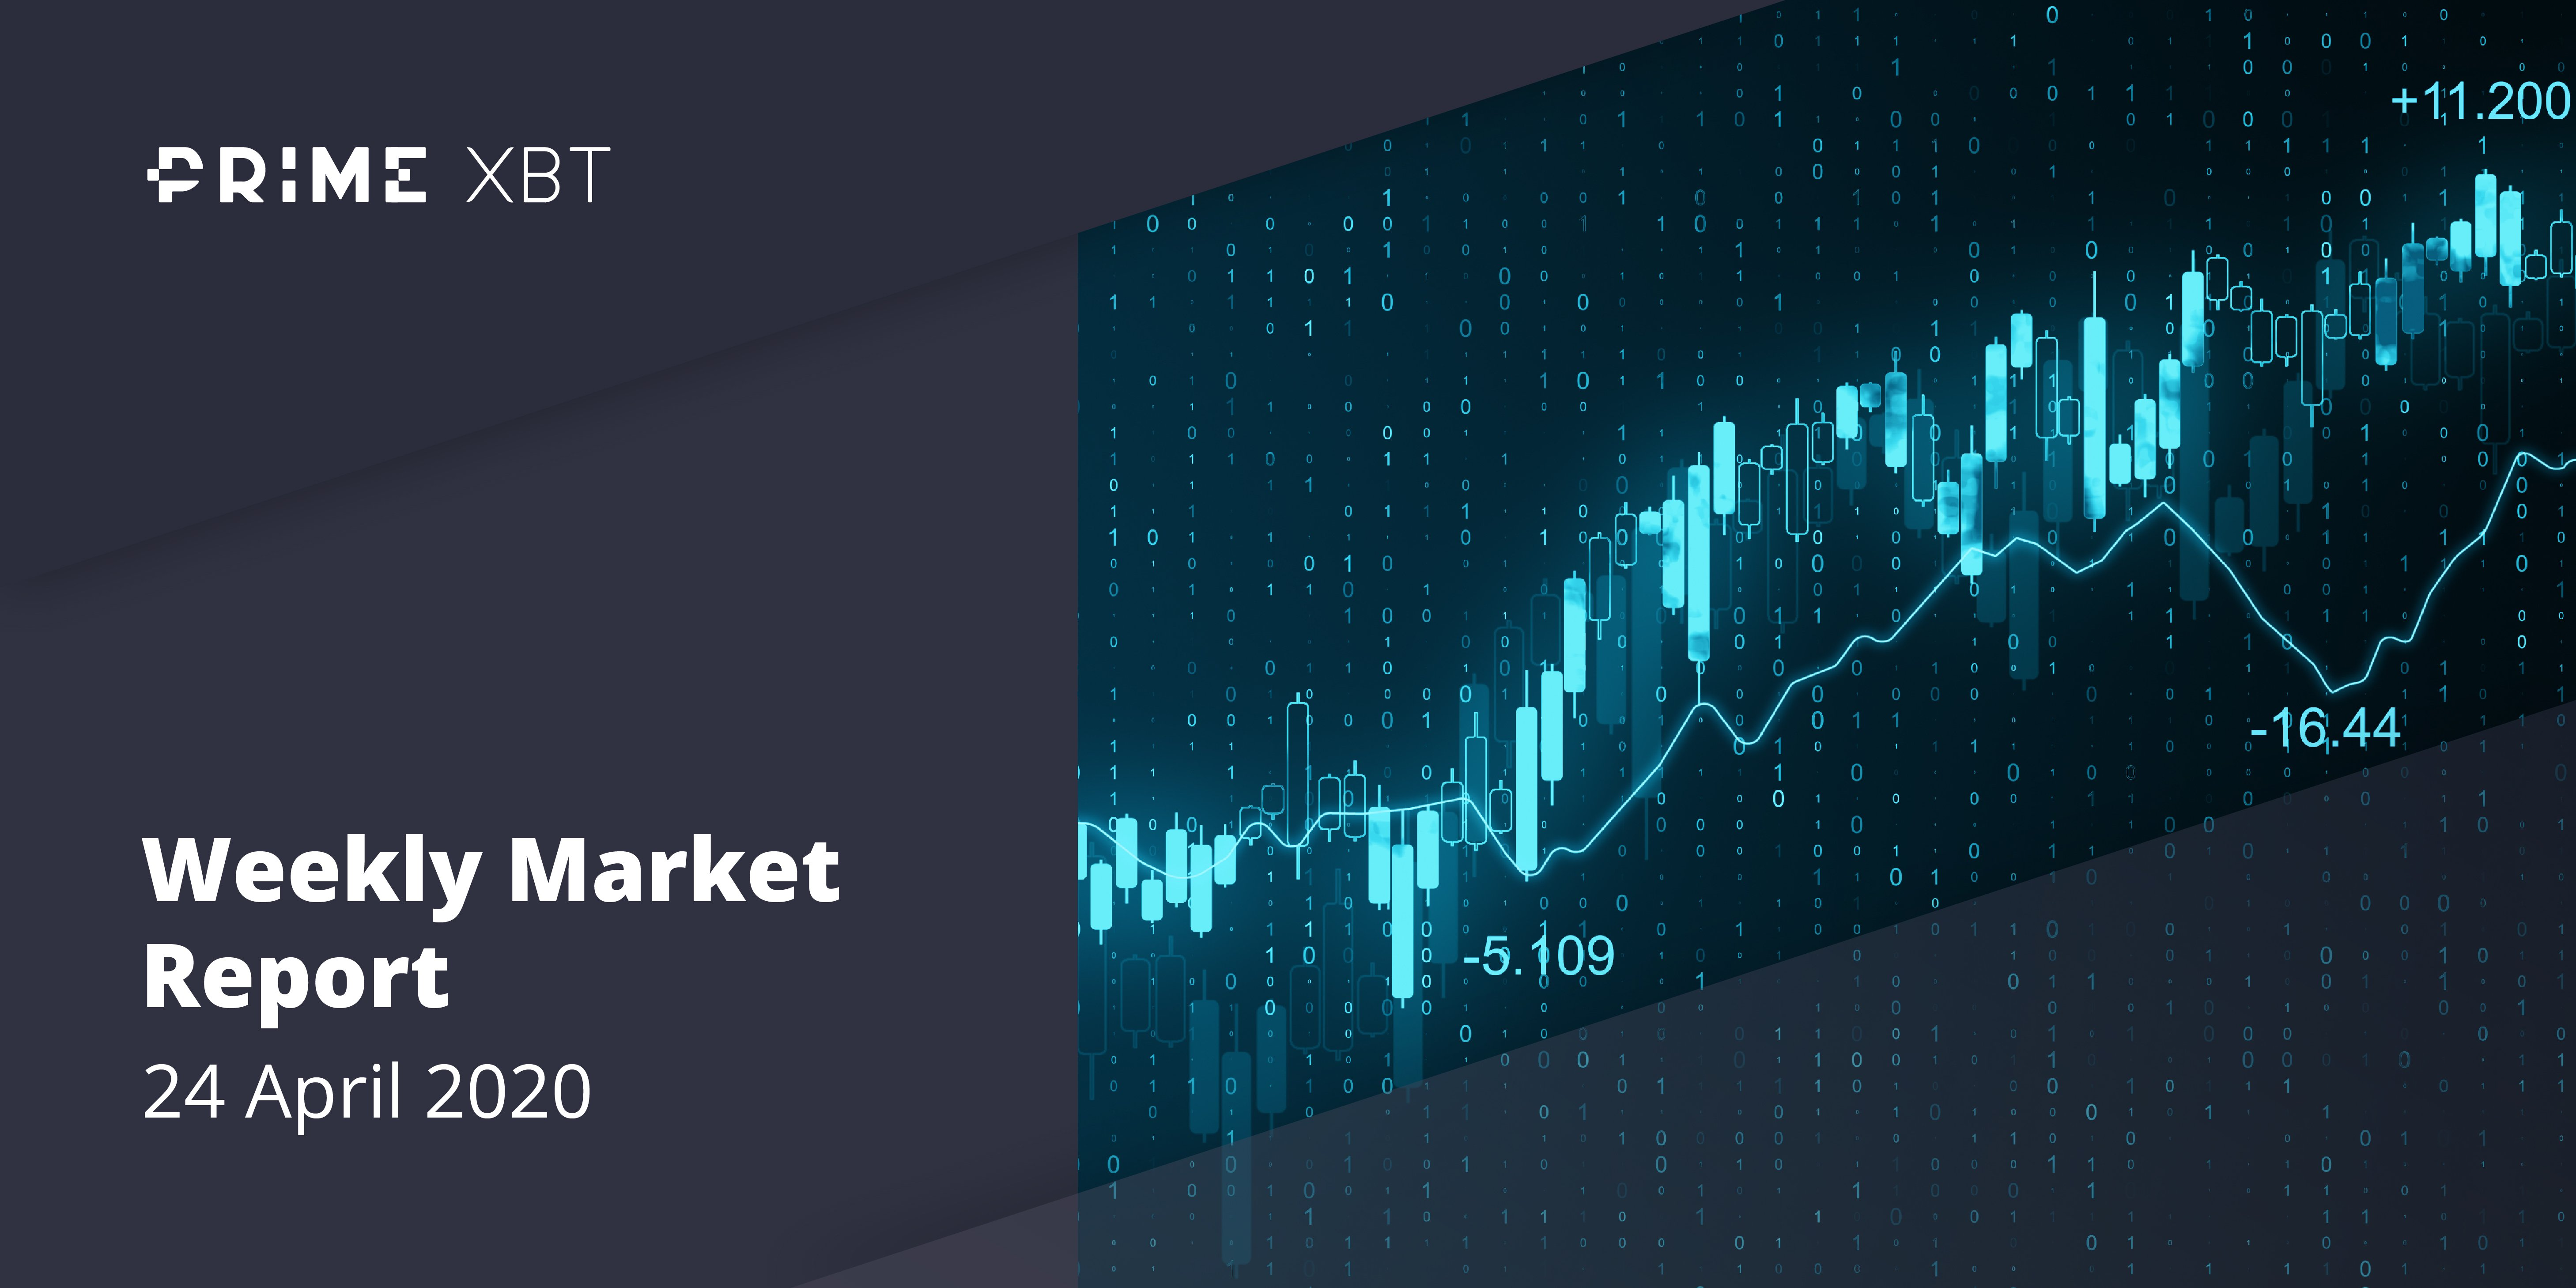 Crypto Market Report: Bitcoin Back in Green for 2020 after Strong Week But Market Confidence Still Low - 24.04.20